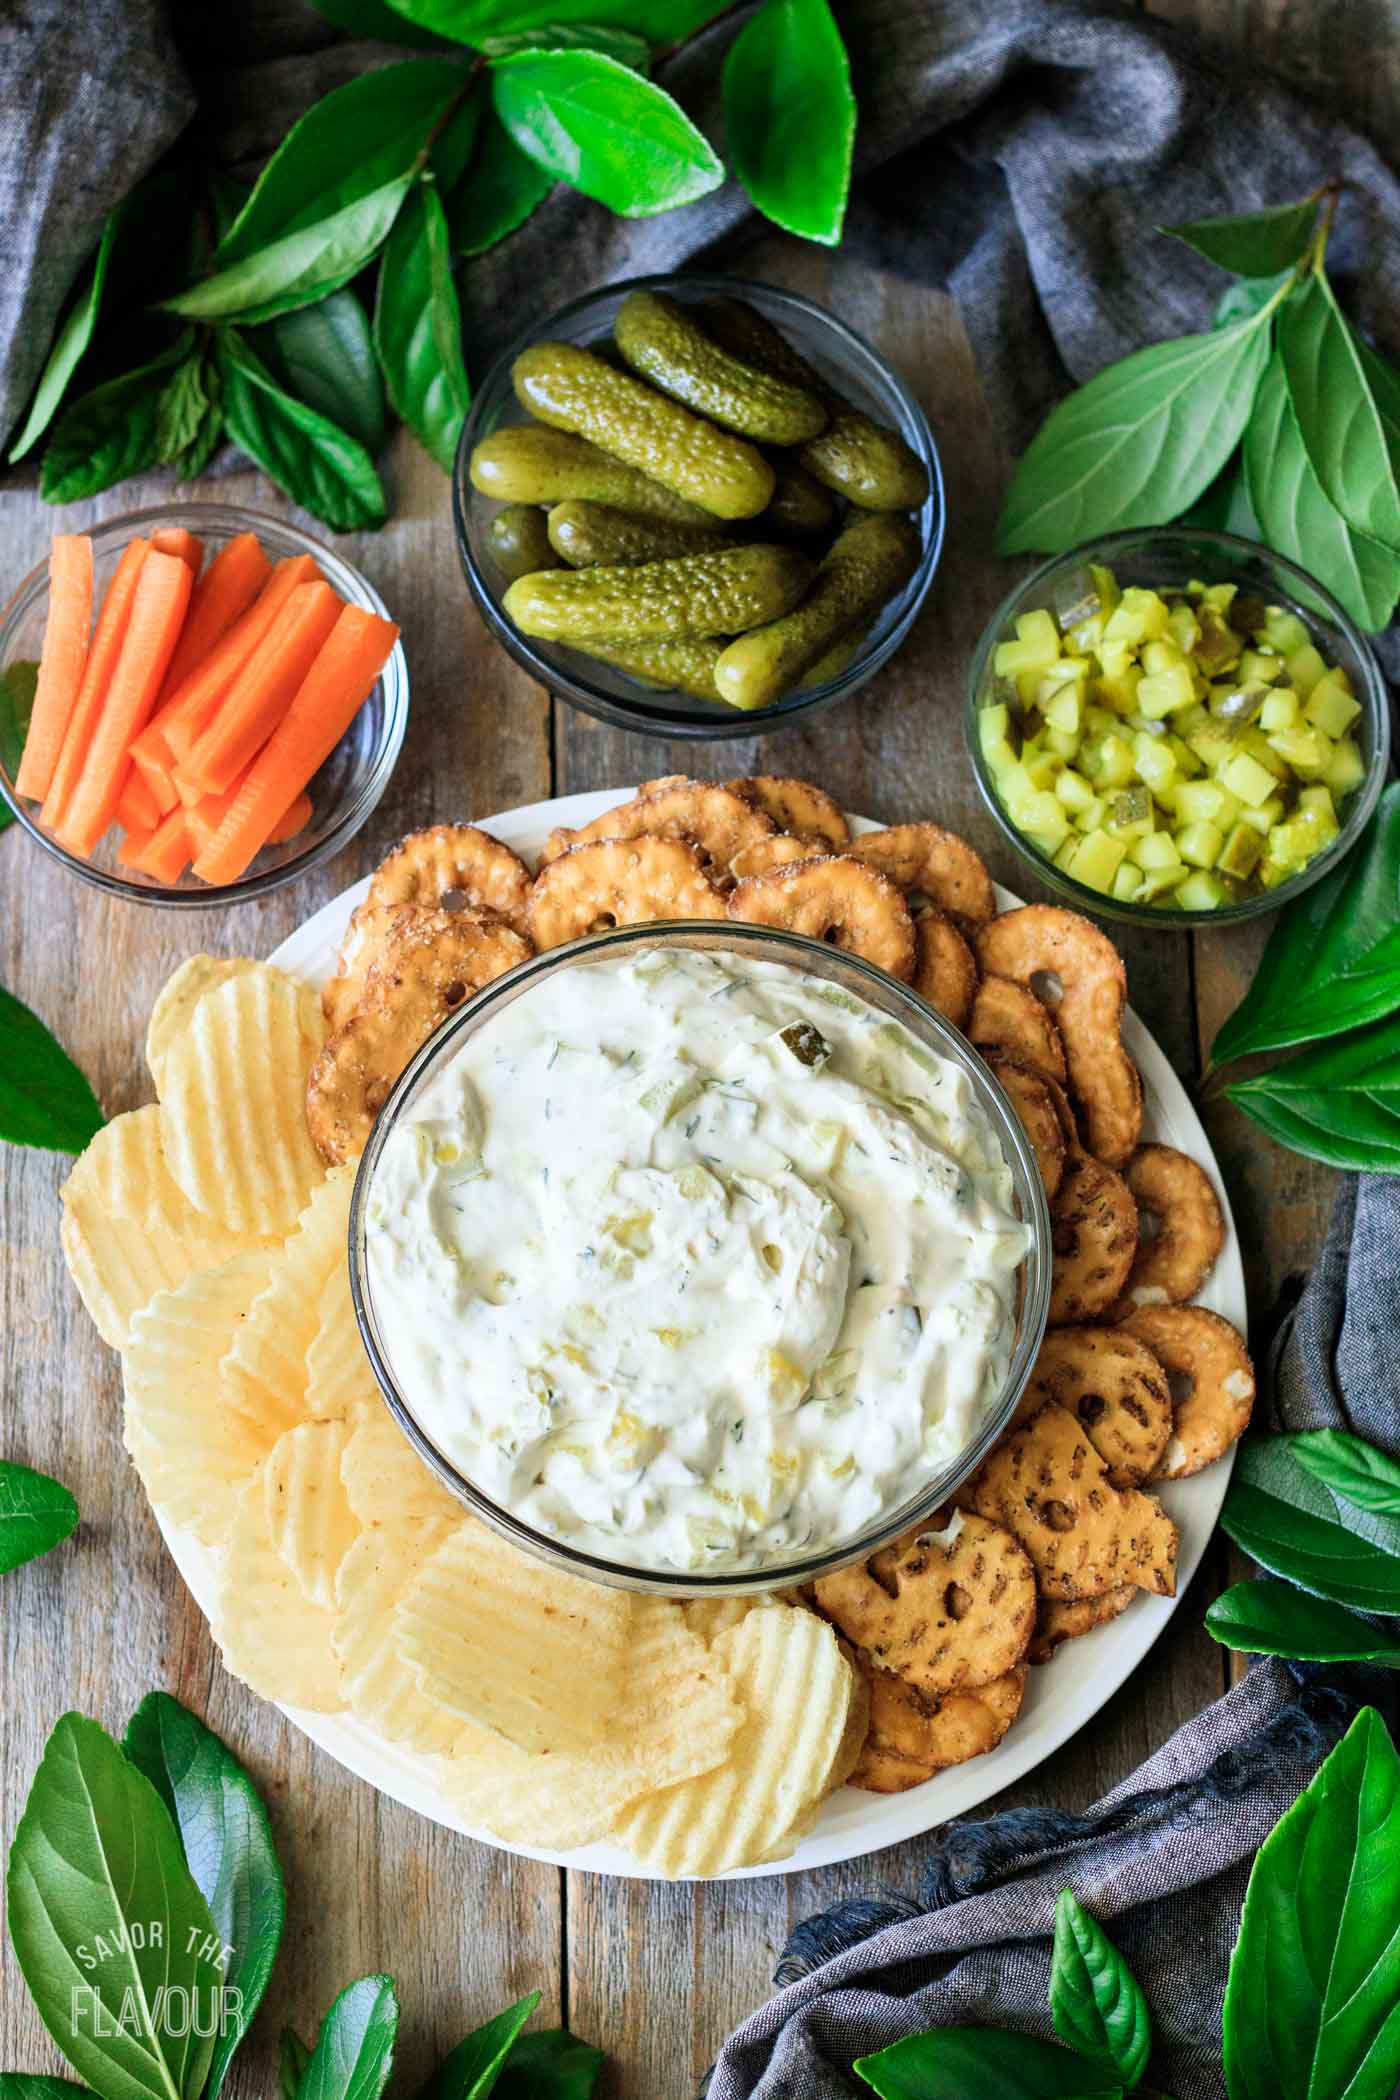 bowl of dill pickle dip with carrots, pickles, chips, and pretzels